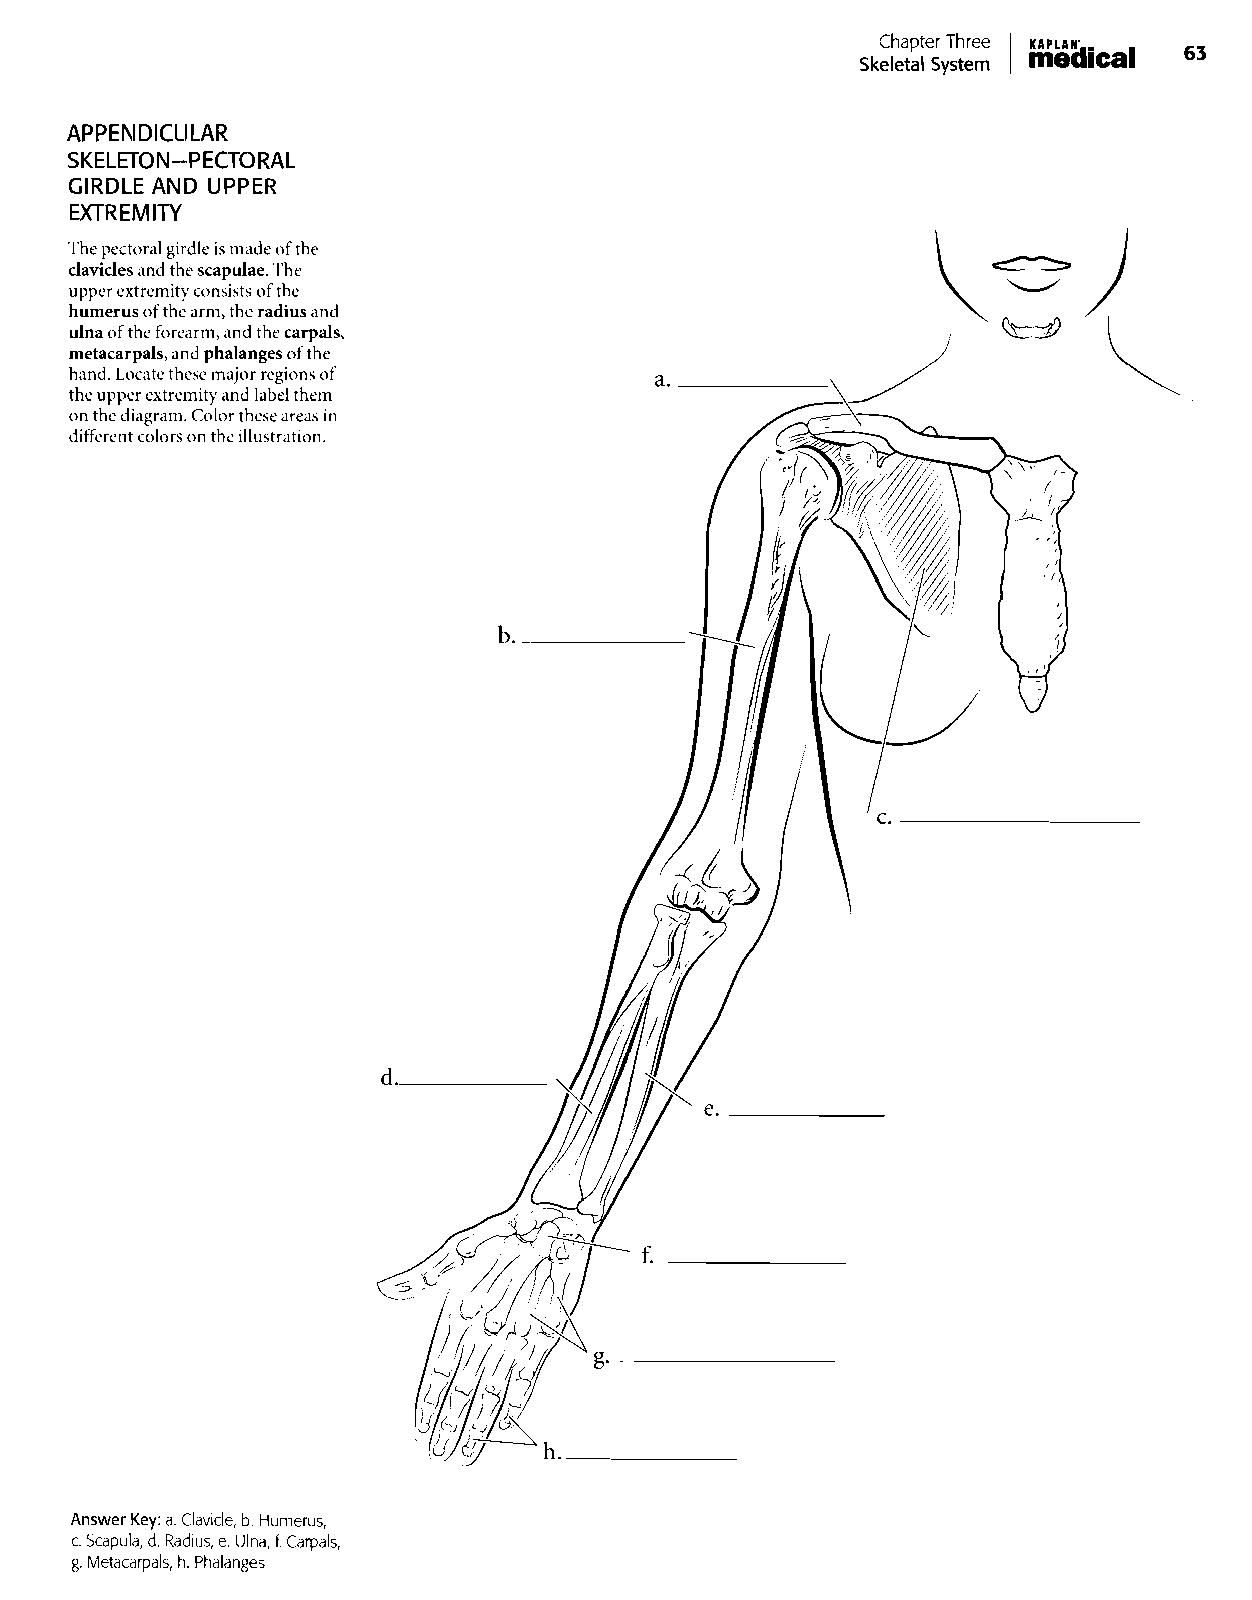 Kaplan Anatomy Coloring Book.pdf | boudli | Pinterest | Anatomy and Pdf